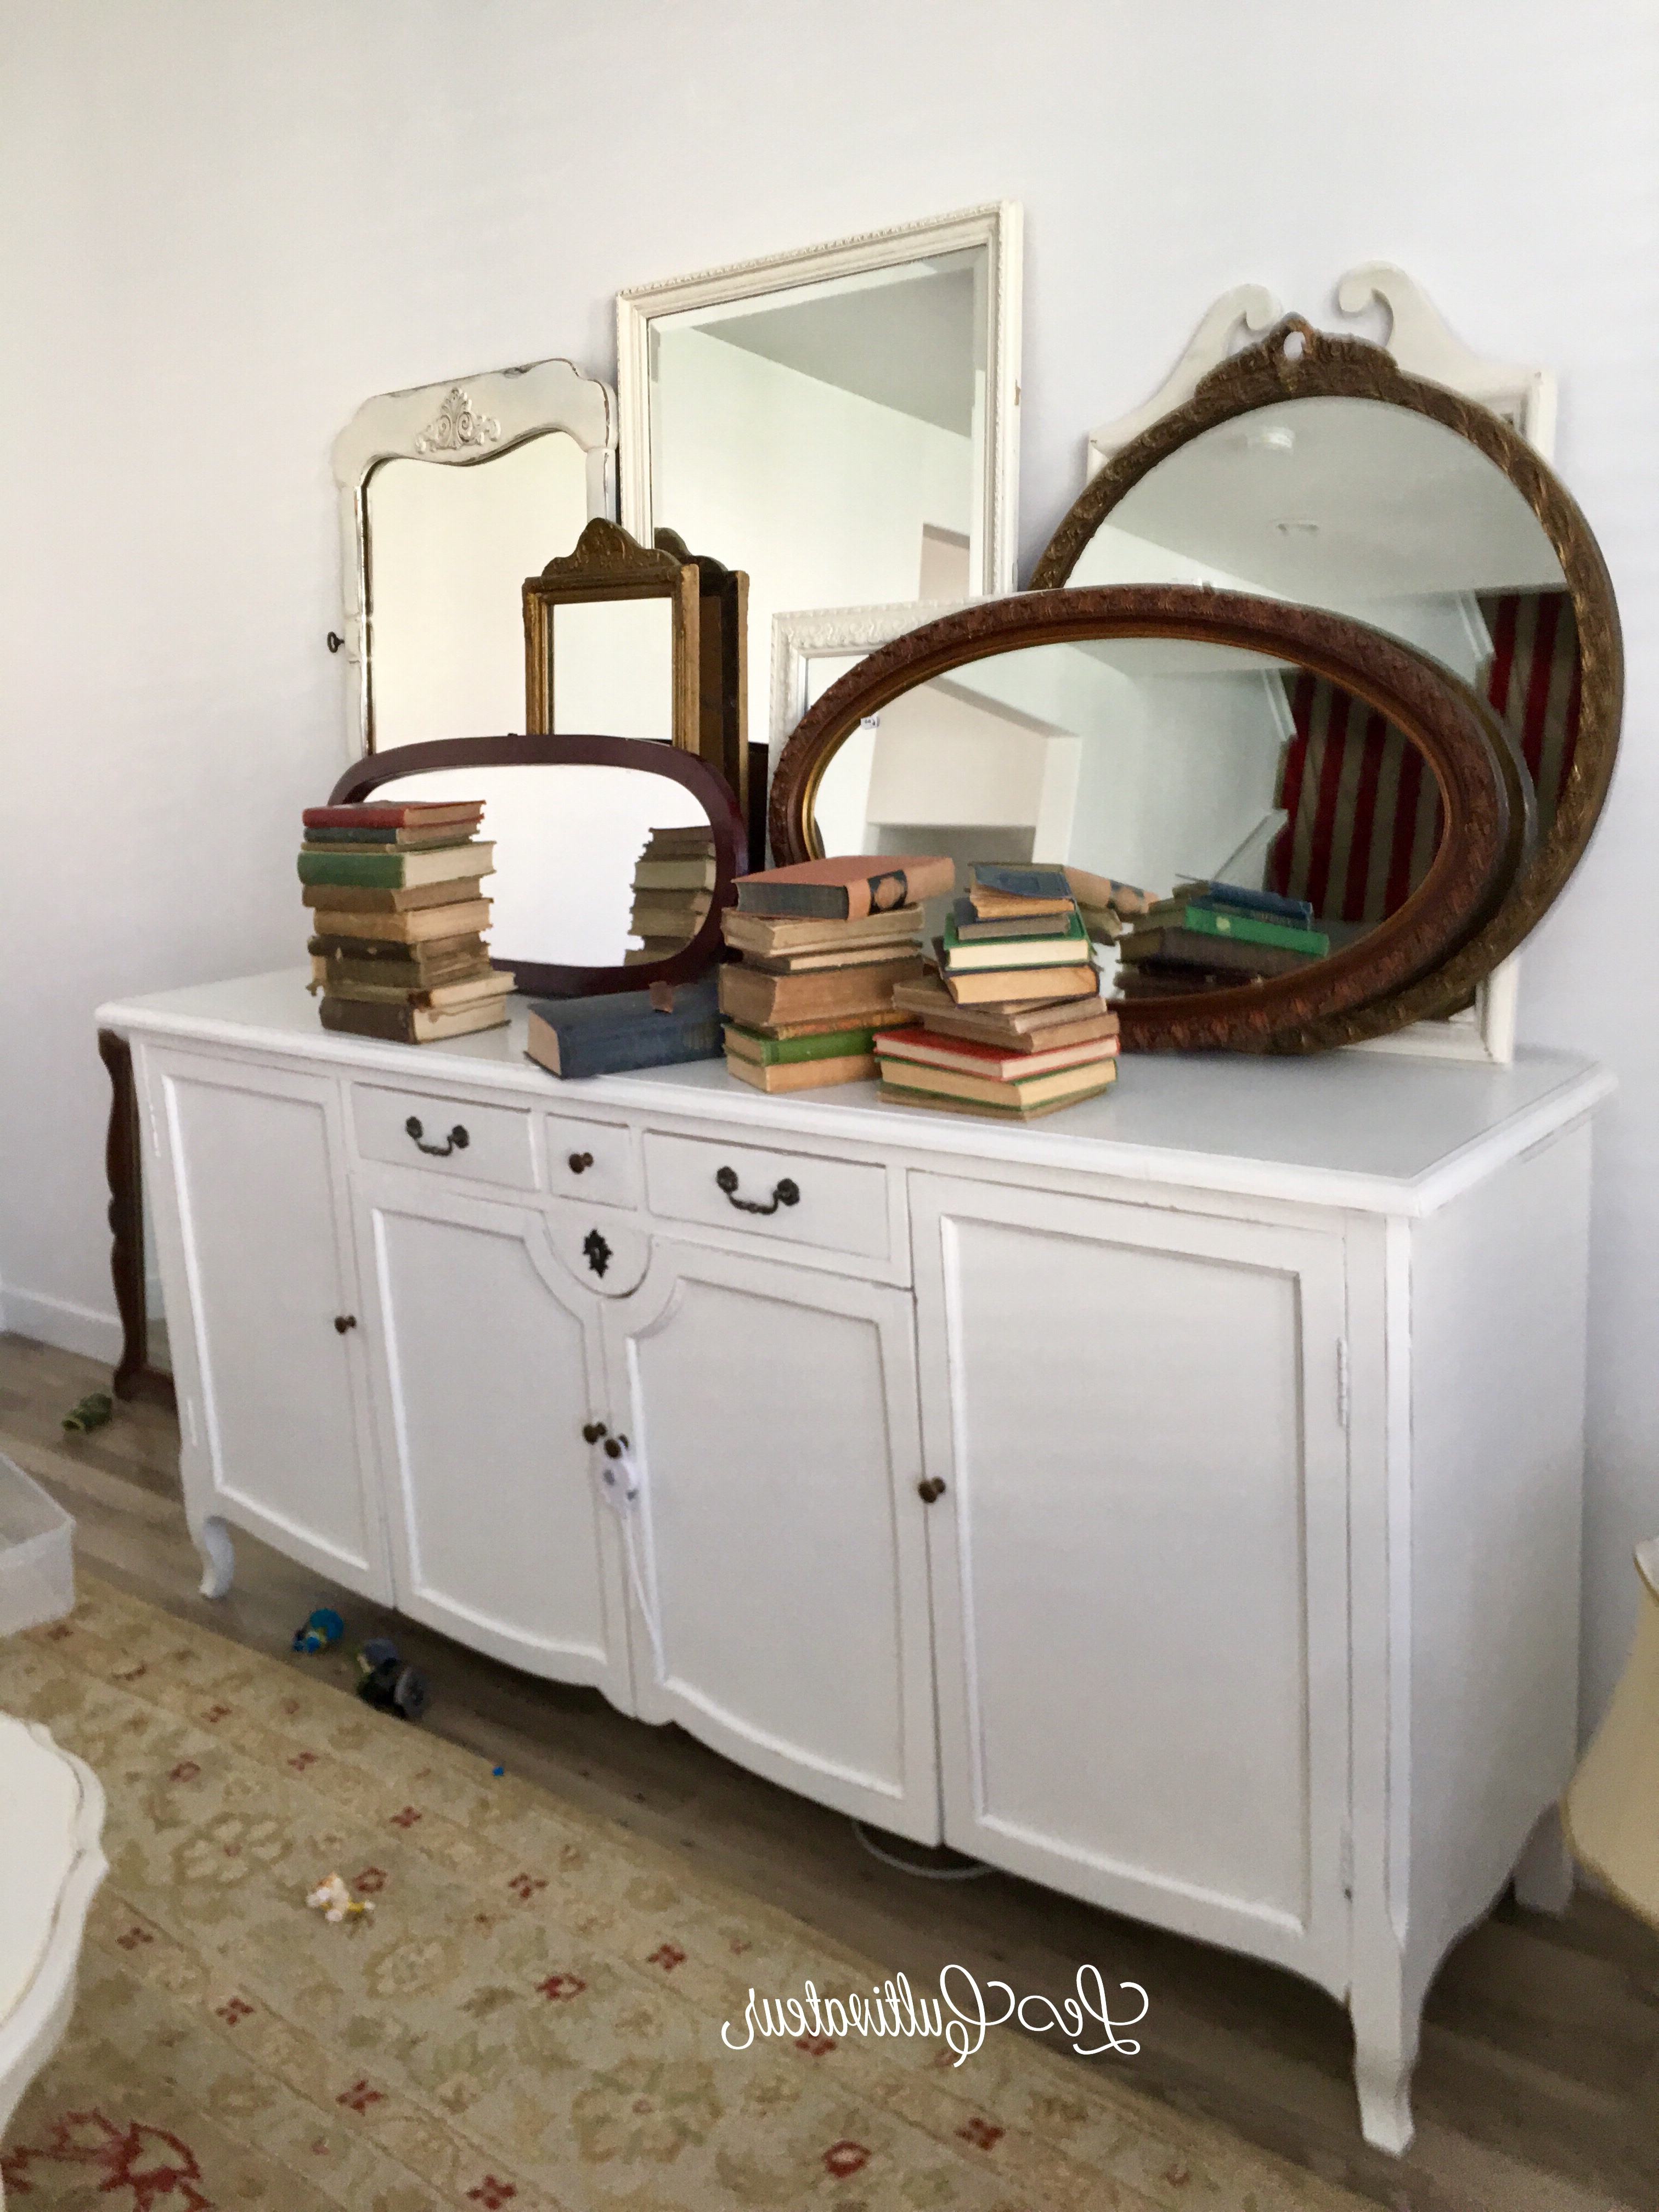 Widely Used Gallery Wall Mirrors Pertaining To Mirror Gallery Wall ~ Lecultivateur (View 12 of 20)